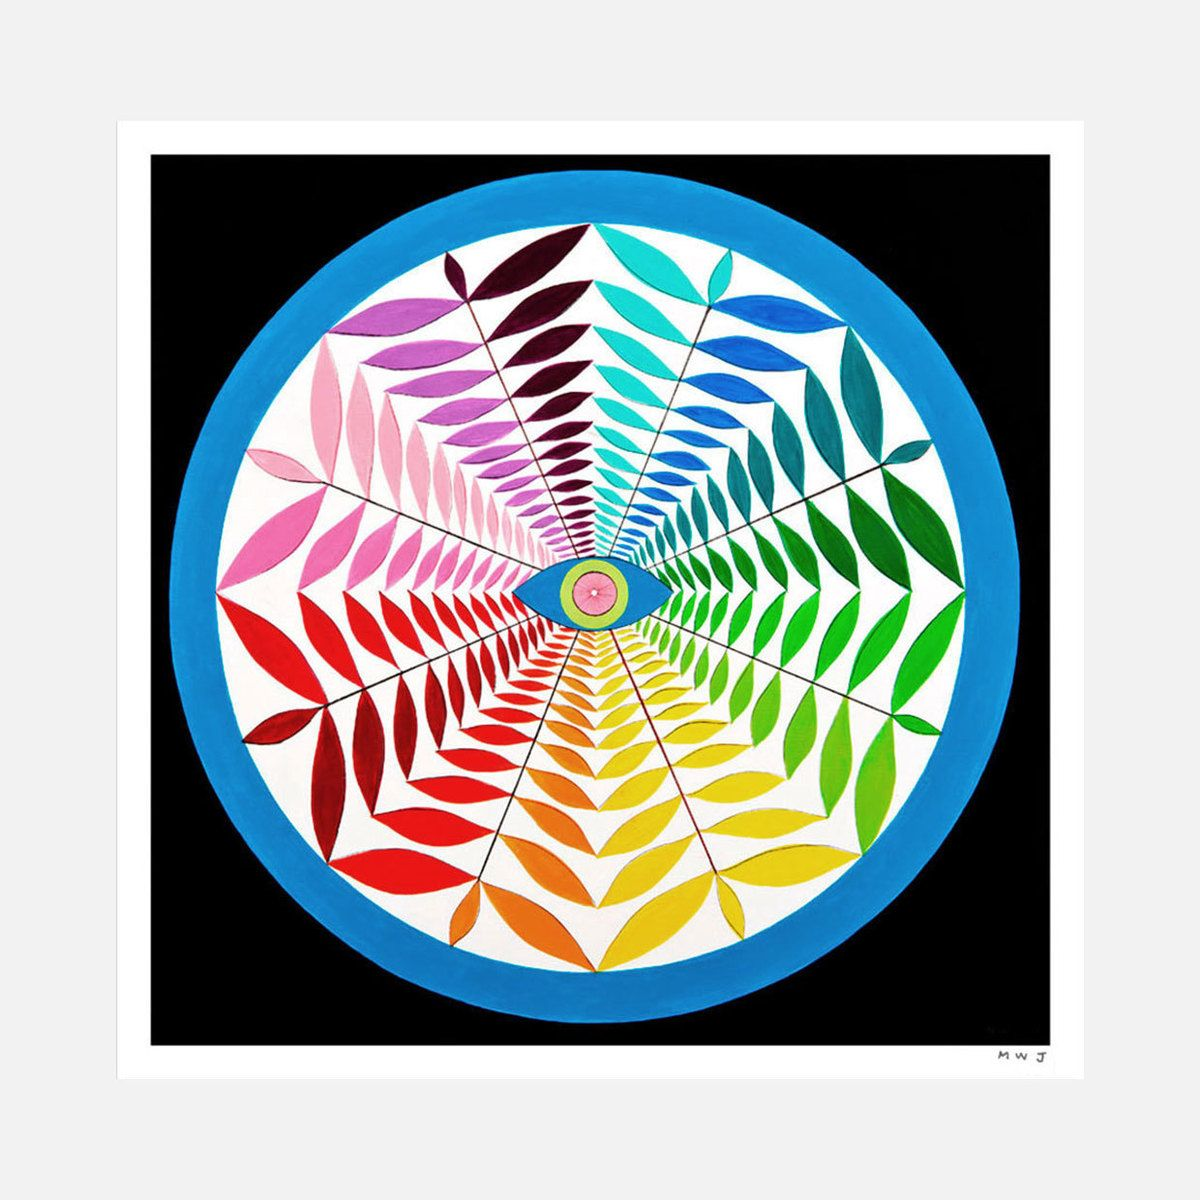 Co color wheel art - Mark Warren Jacques Thinking Of Using This As An Alternative Project Idea For The Color Wheel Have The Students Come Up With A Radial Pattern While Working